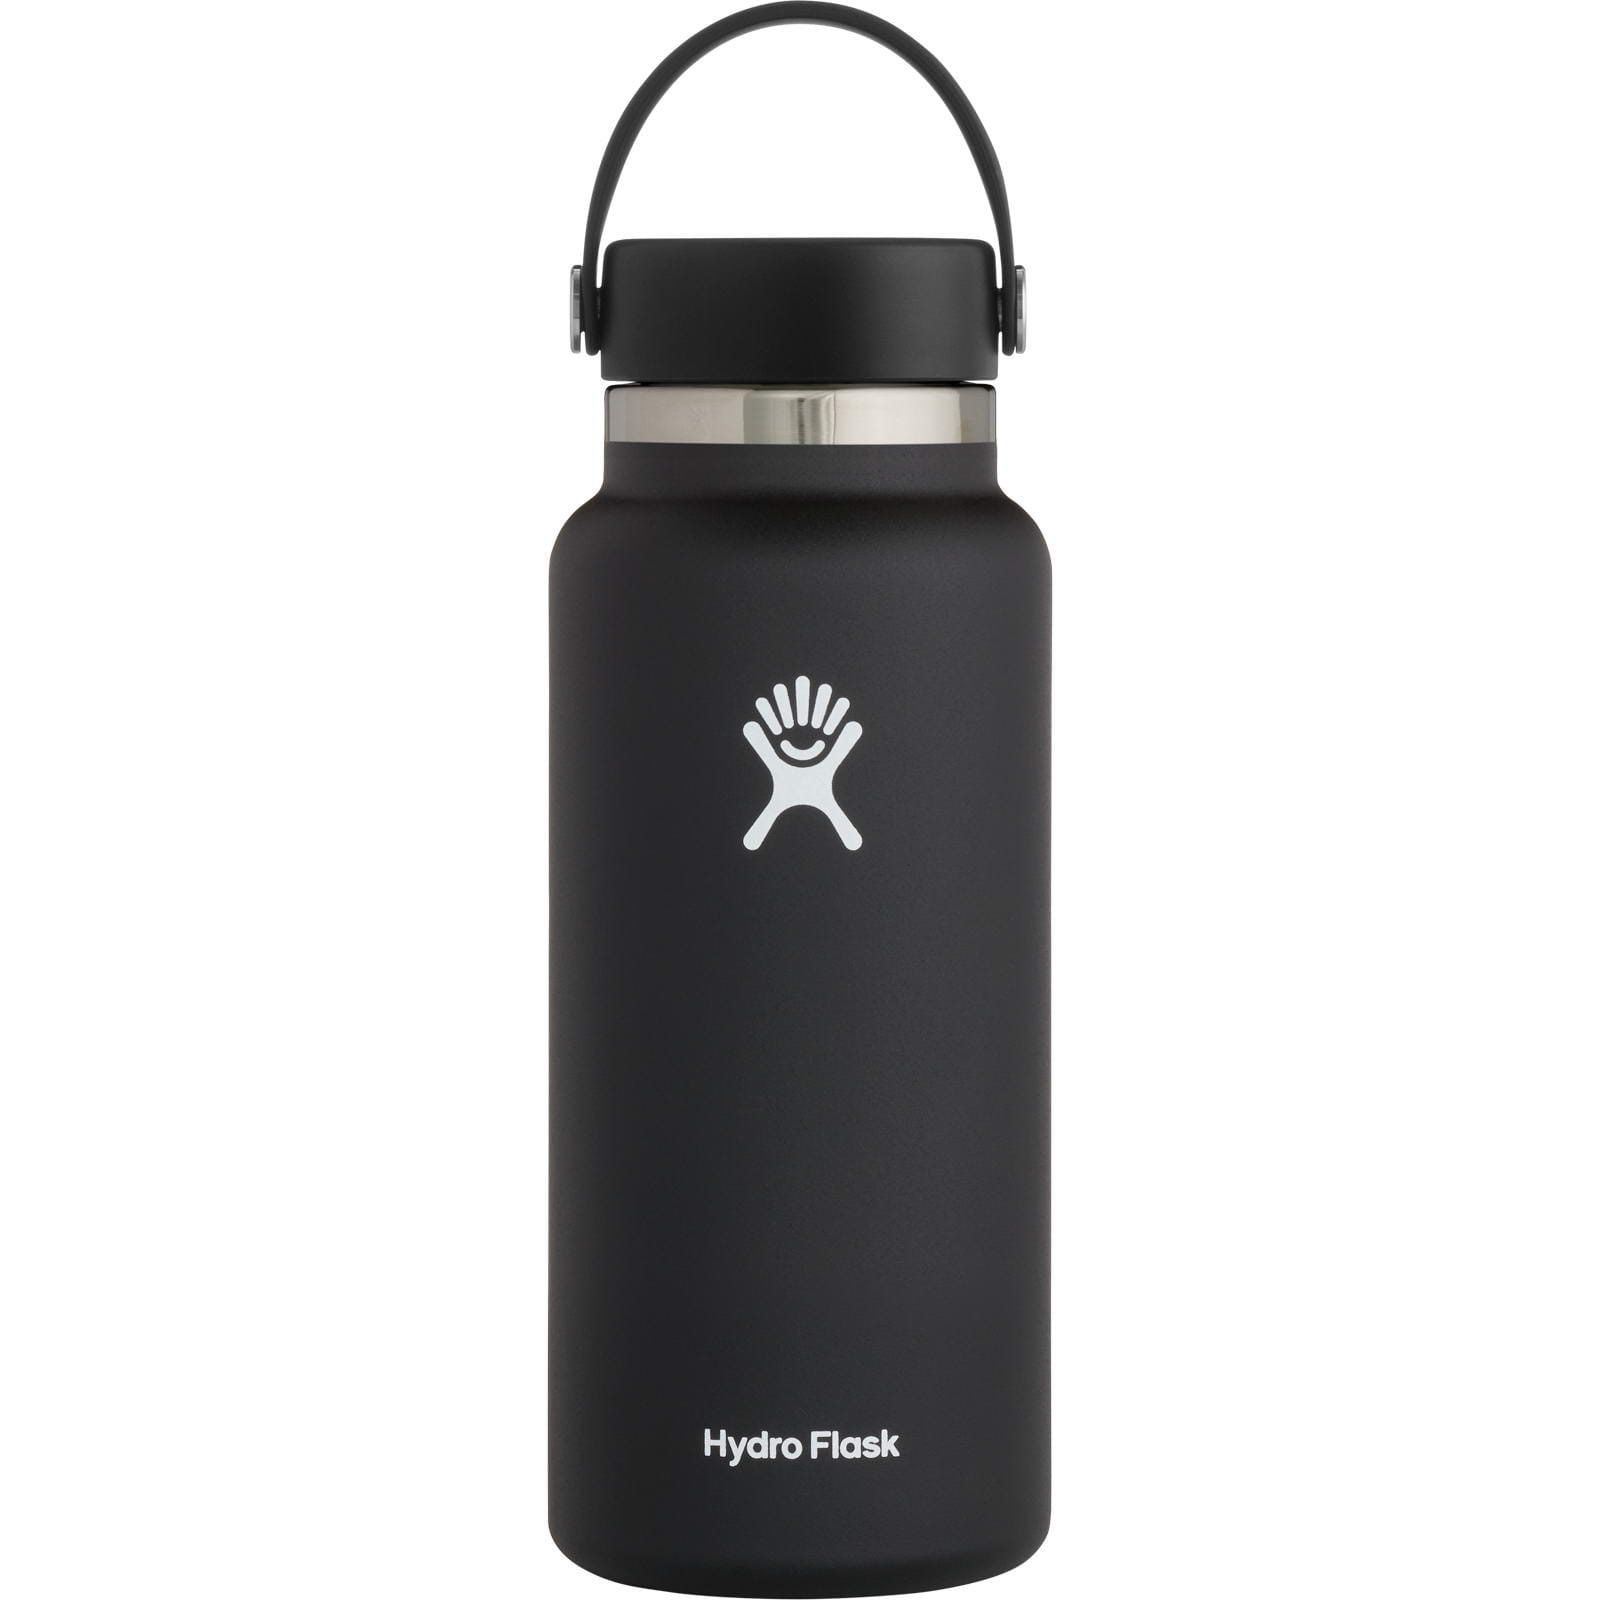 Hydro Flask 32 oz Wide Mouth - Thermoflasche black - Bild 1